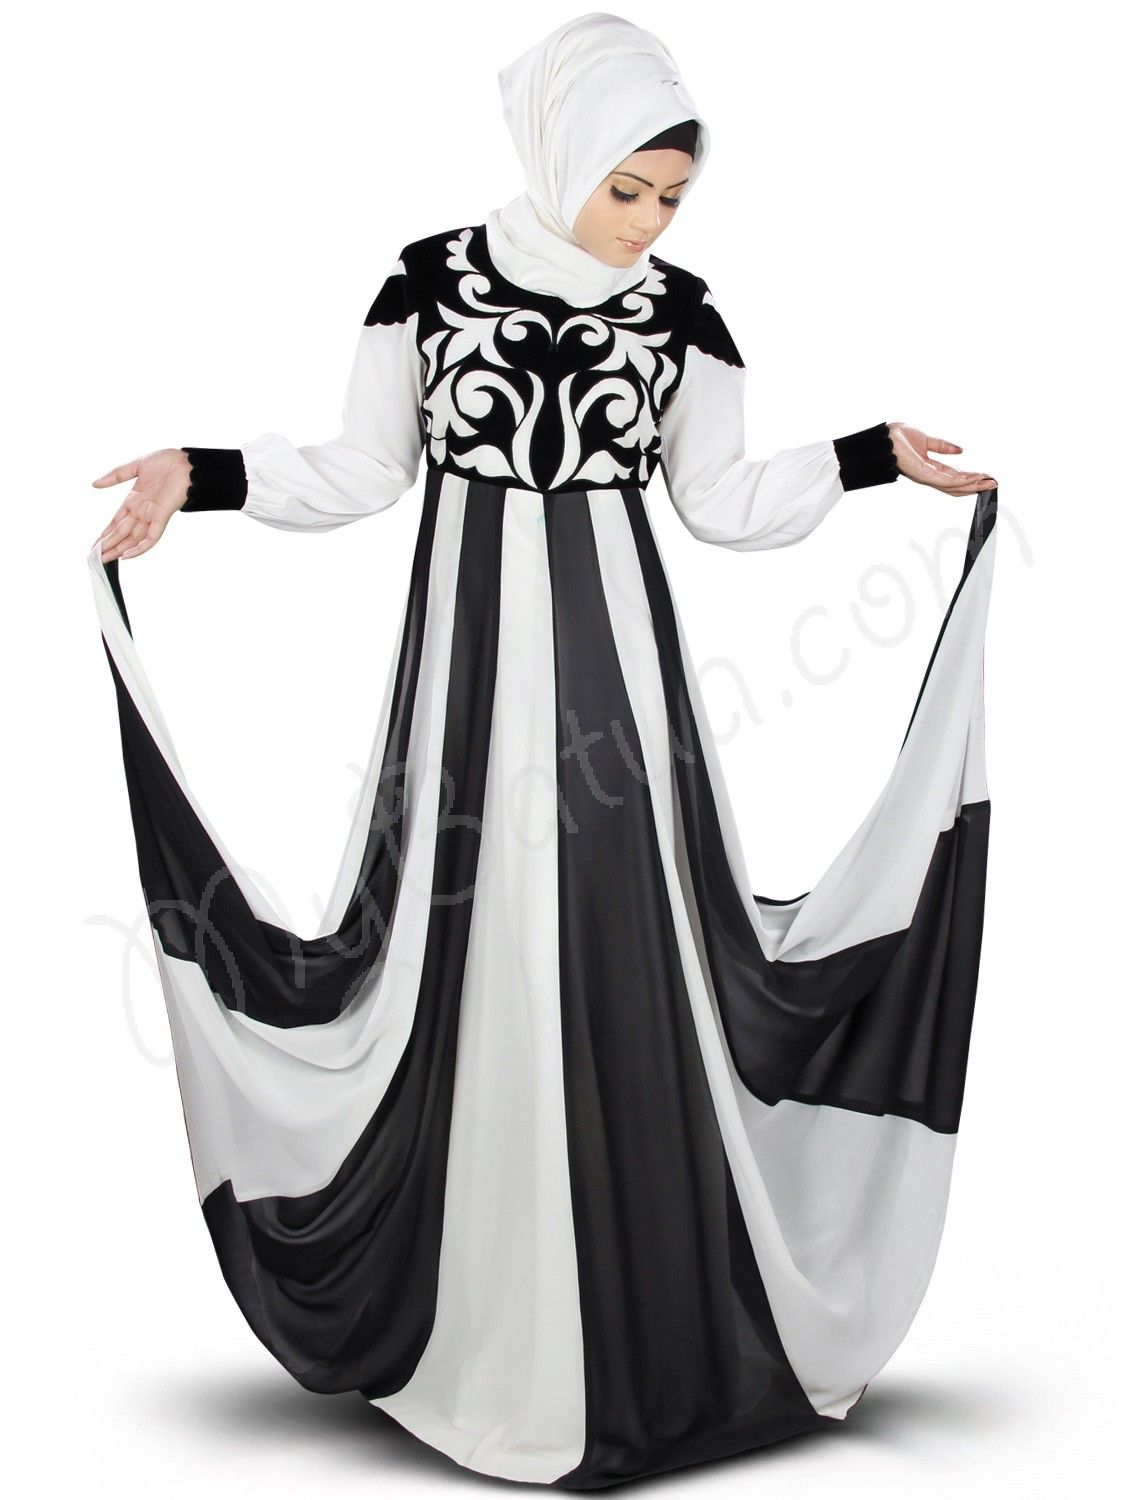 Beautiful Panels All-round Off White and Black Party Wear Abaya | MyBatua.com Shurafa Abaya ! Style No : AY-359 Shopping Link : http://www.mybatua.com/shurafa-abaya Available Sizes XS to 7XL (size chart: http://www.mybatua.com/size-chart/#ABAYA/JILBAB) • Party wear Abaya with round neckline • Dual color panels all-round below waist • Velvet patch work embroidery in front • Bishop sleeves finished with velvet embroidery patch • Matching Square Hijab (100x100 cm approx.)